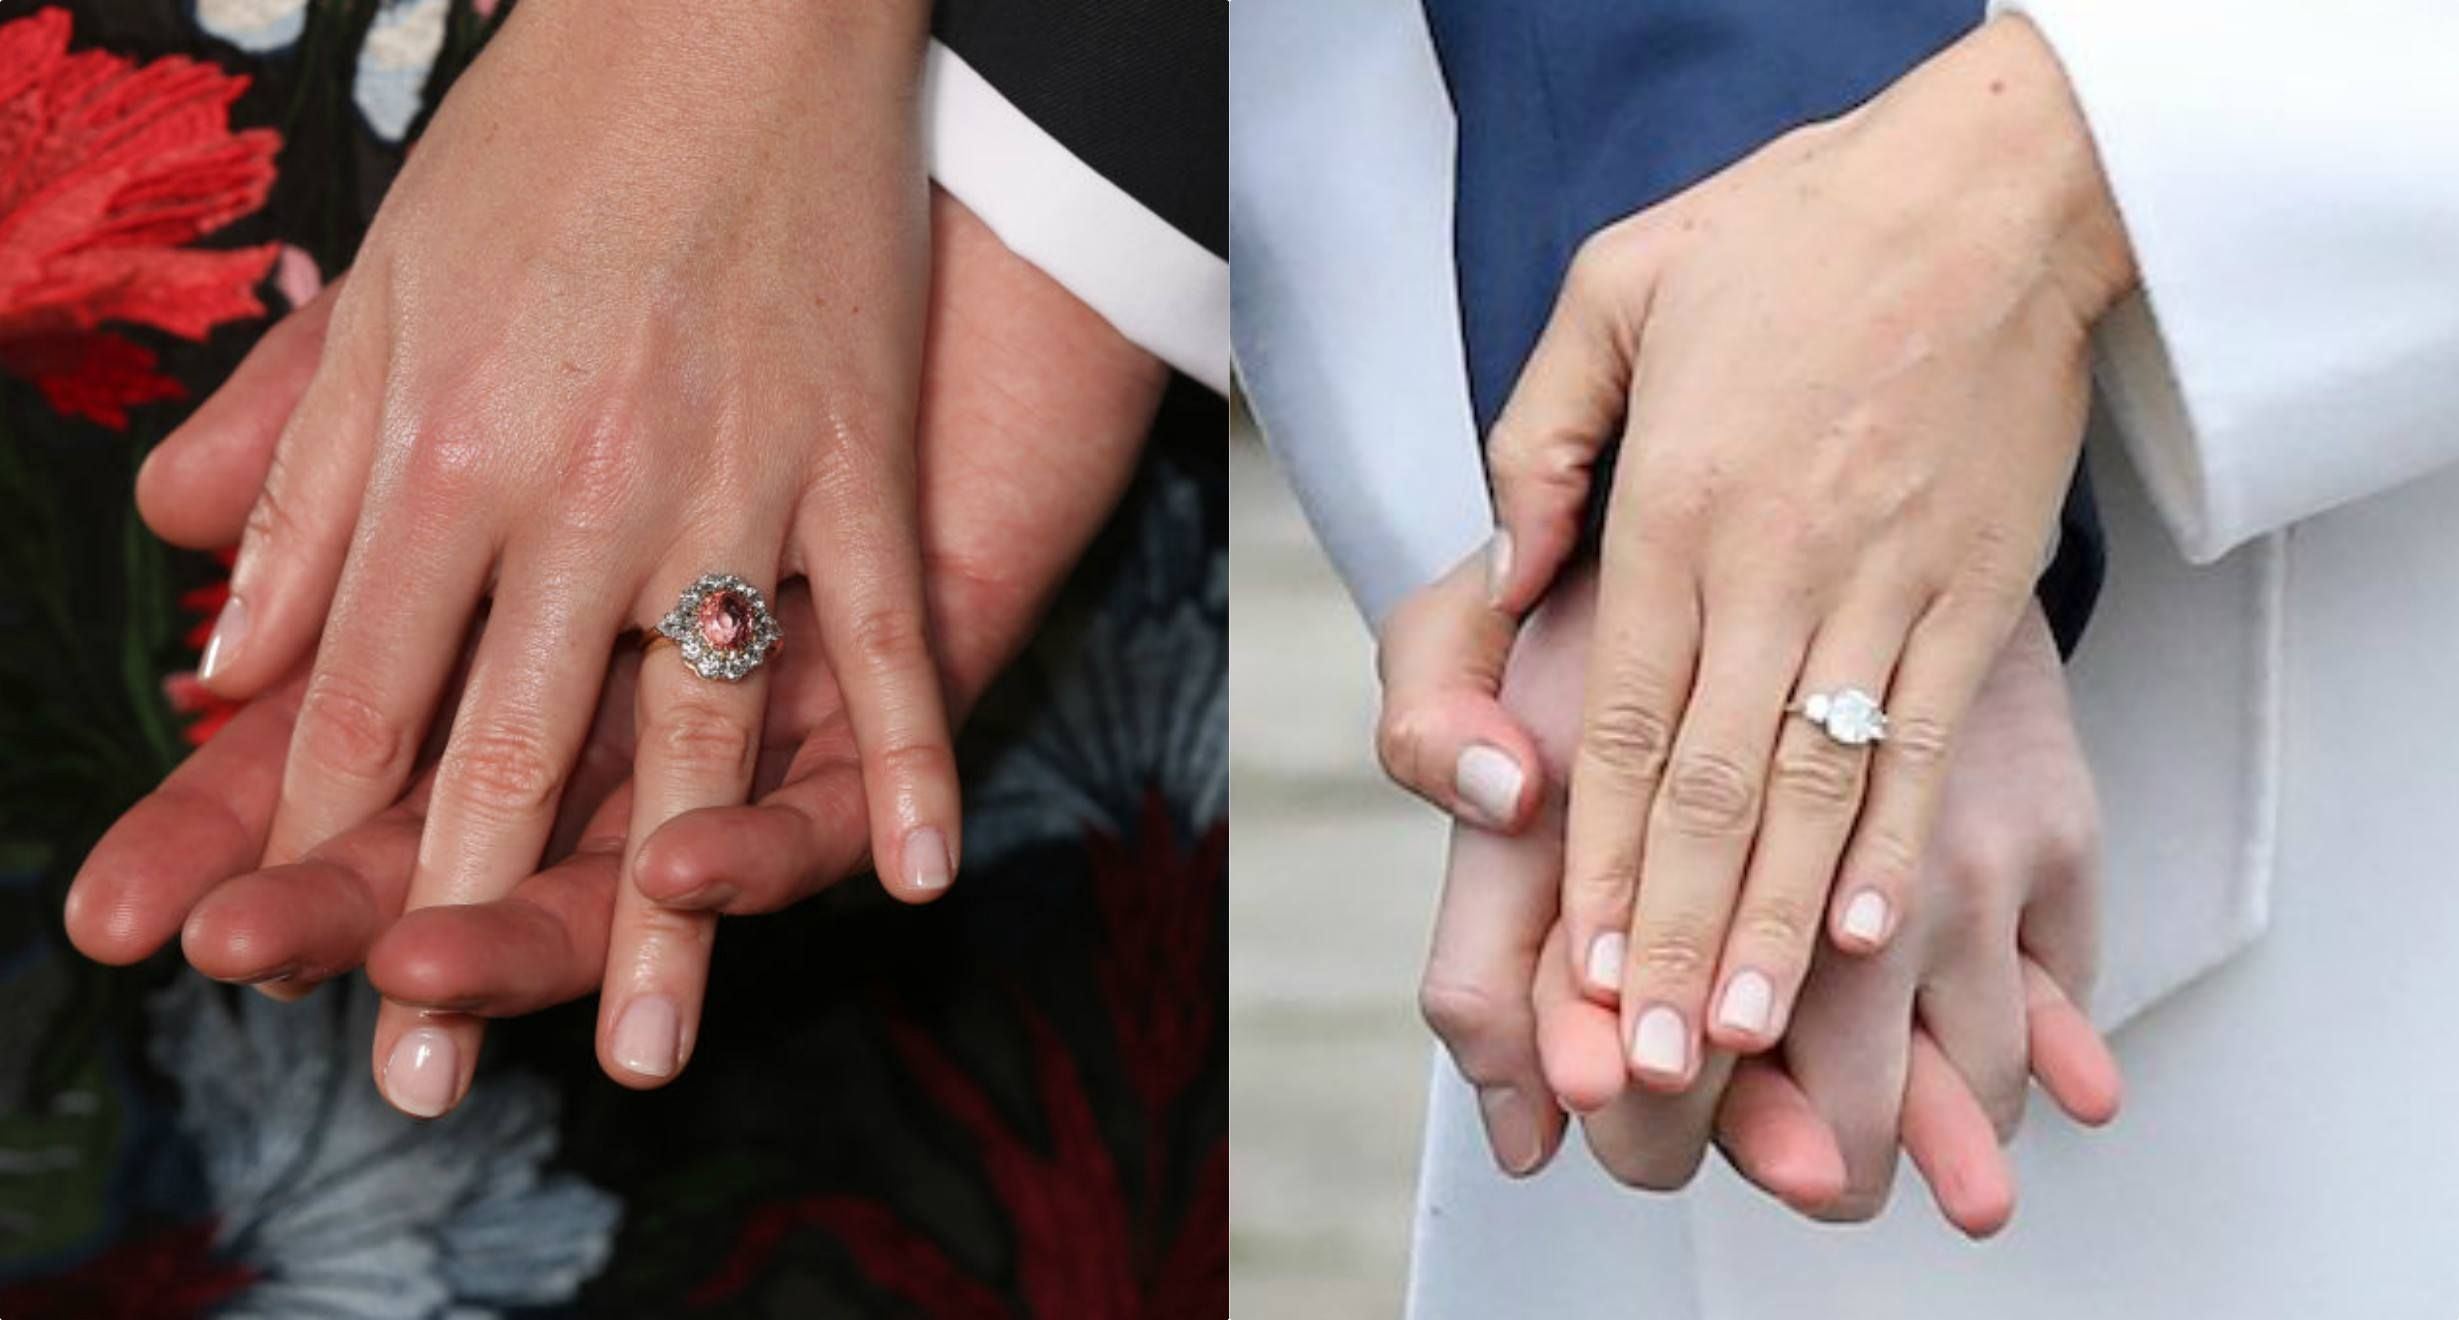 Engagement Rings L Princess Eugenie And R Meghan Markle